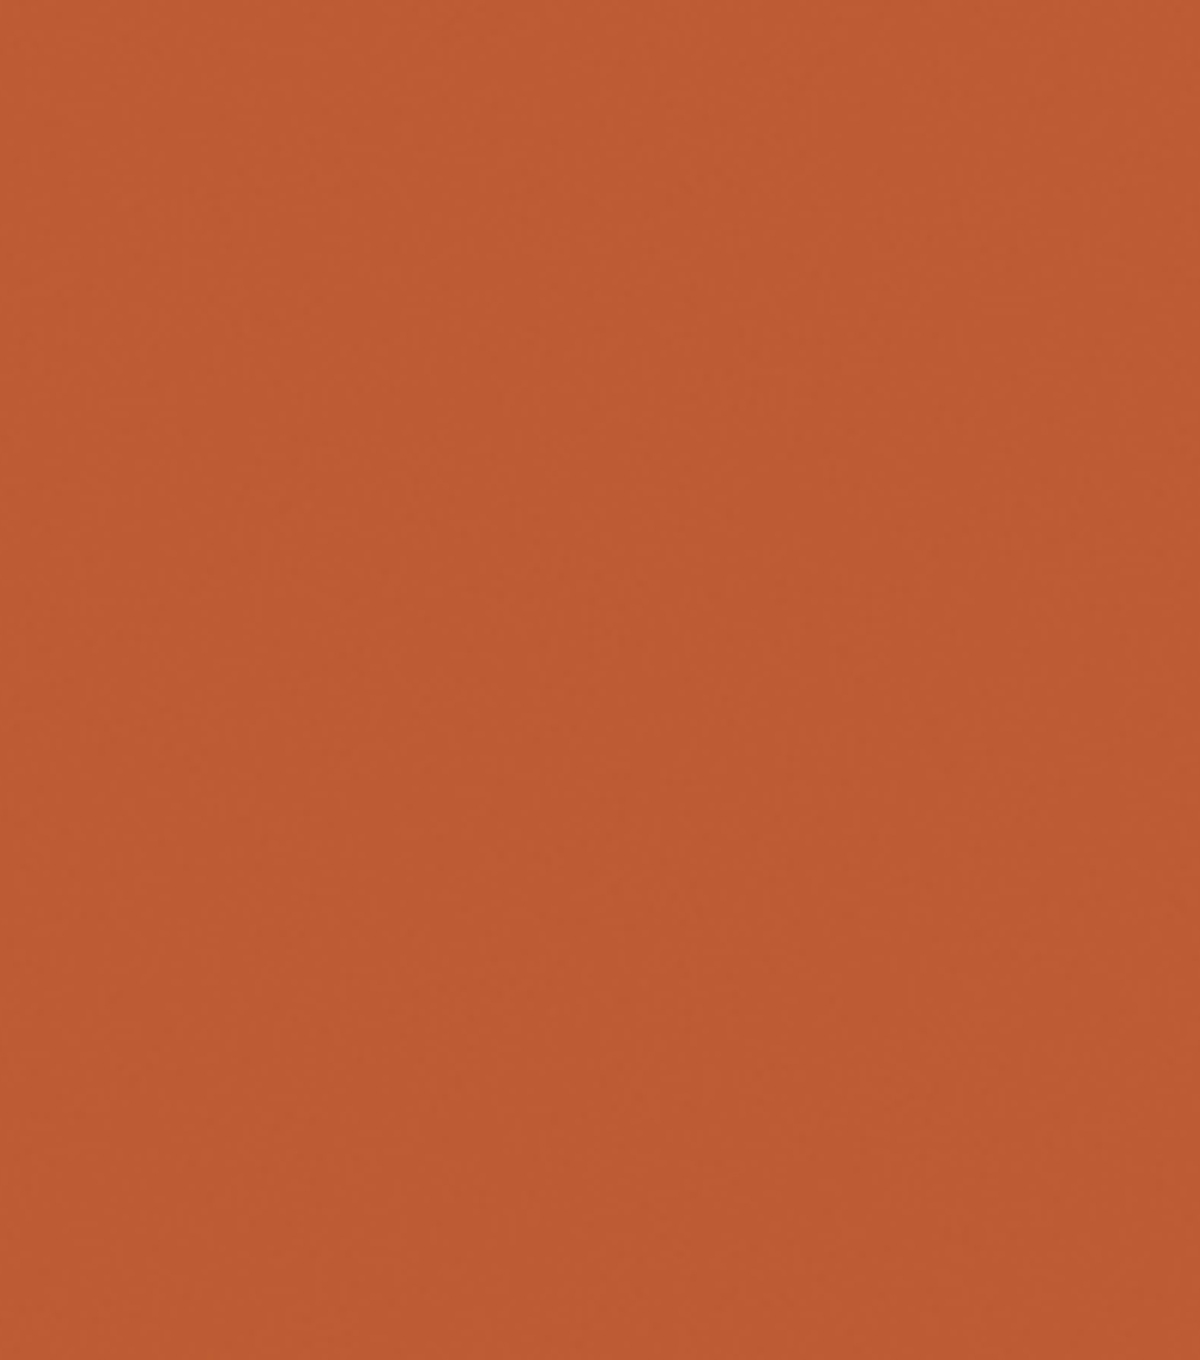 Winsor & Newton Galeria 2 fl. oz. Acrylic Paint Tube, Burnt Sienna Opaque